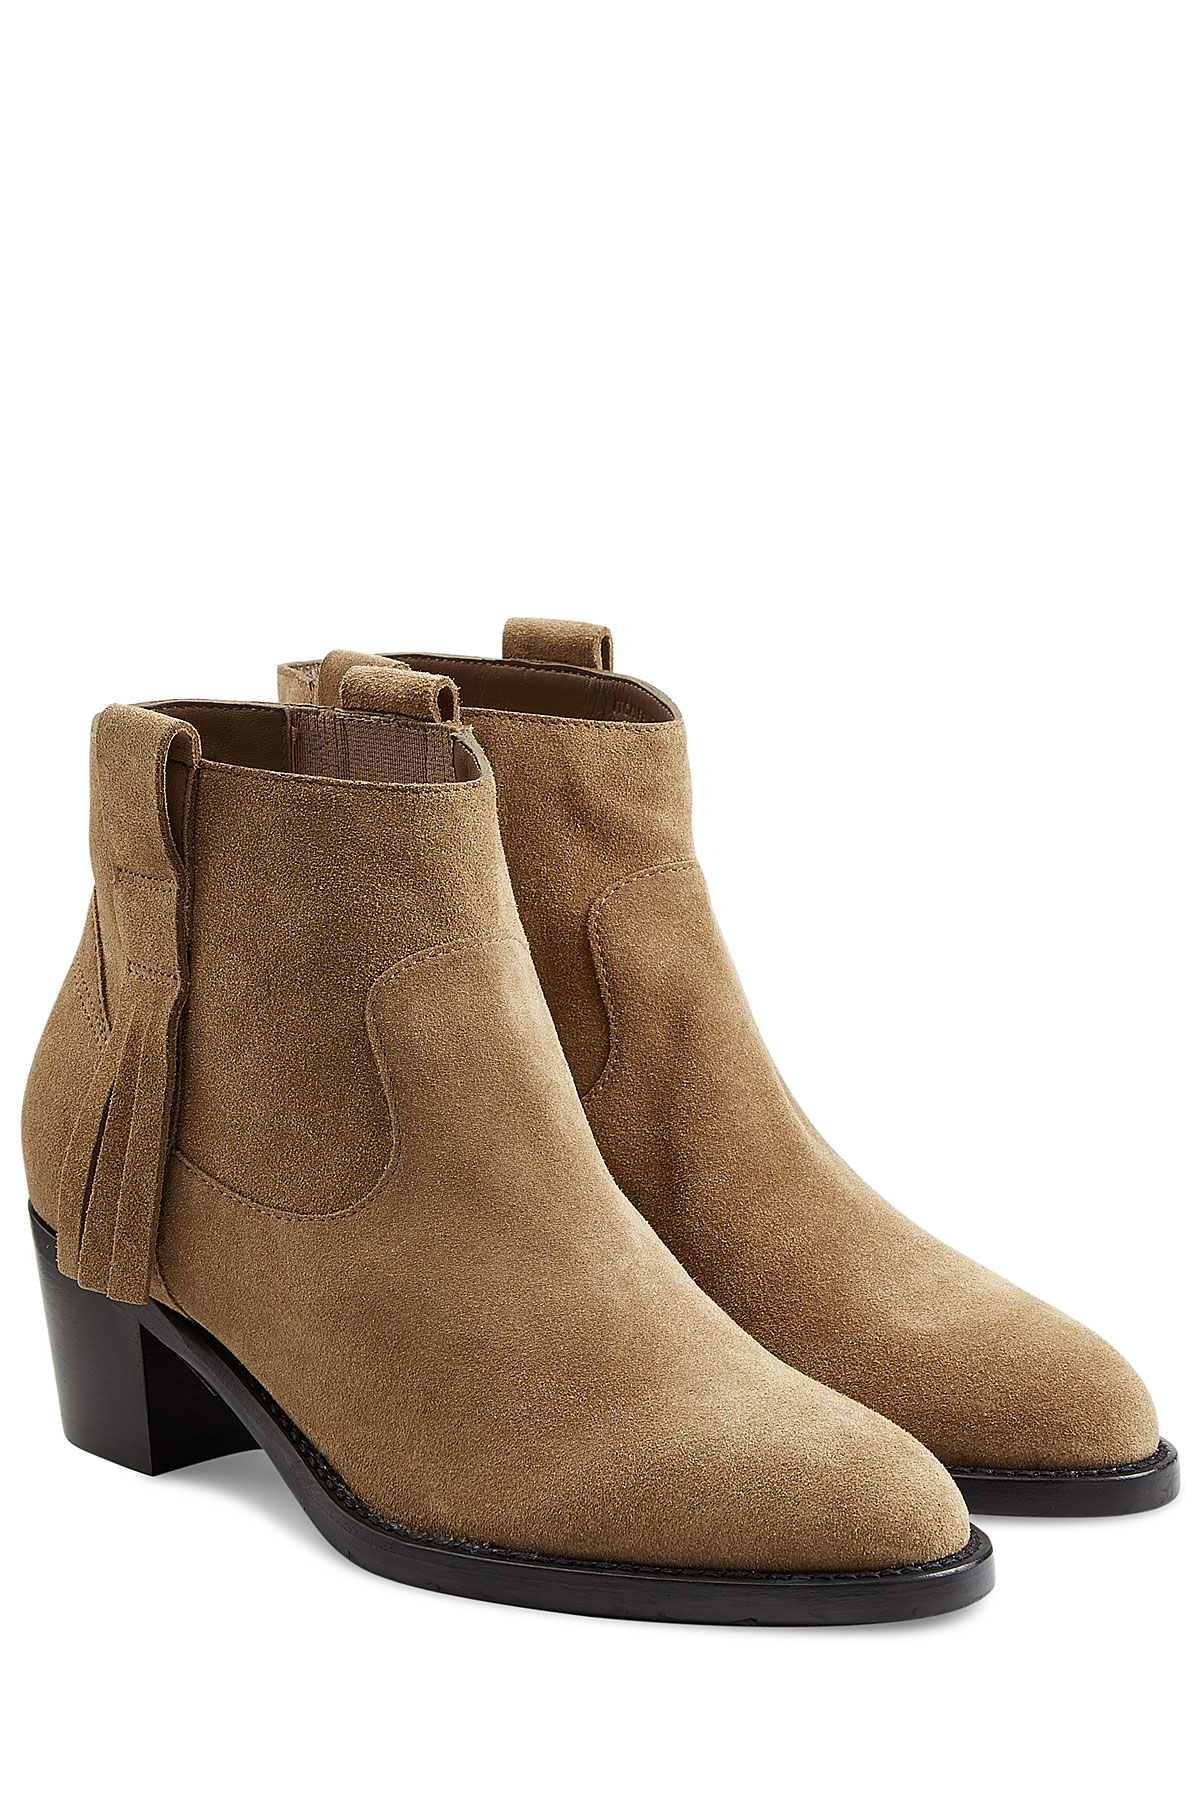 bc980d08cd81 Burberry Suede Ankle Boots - Camel in Natural - Lyst